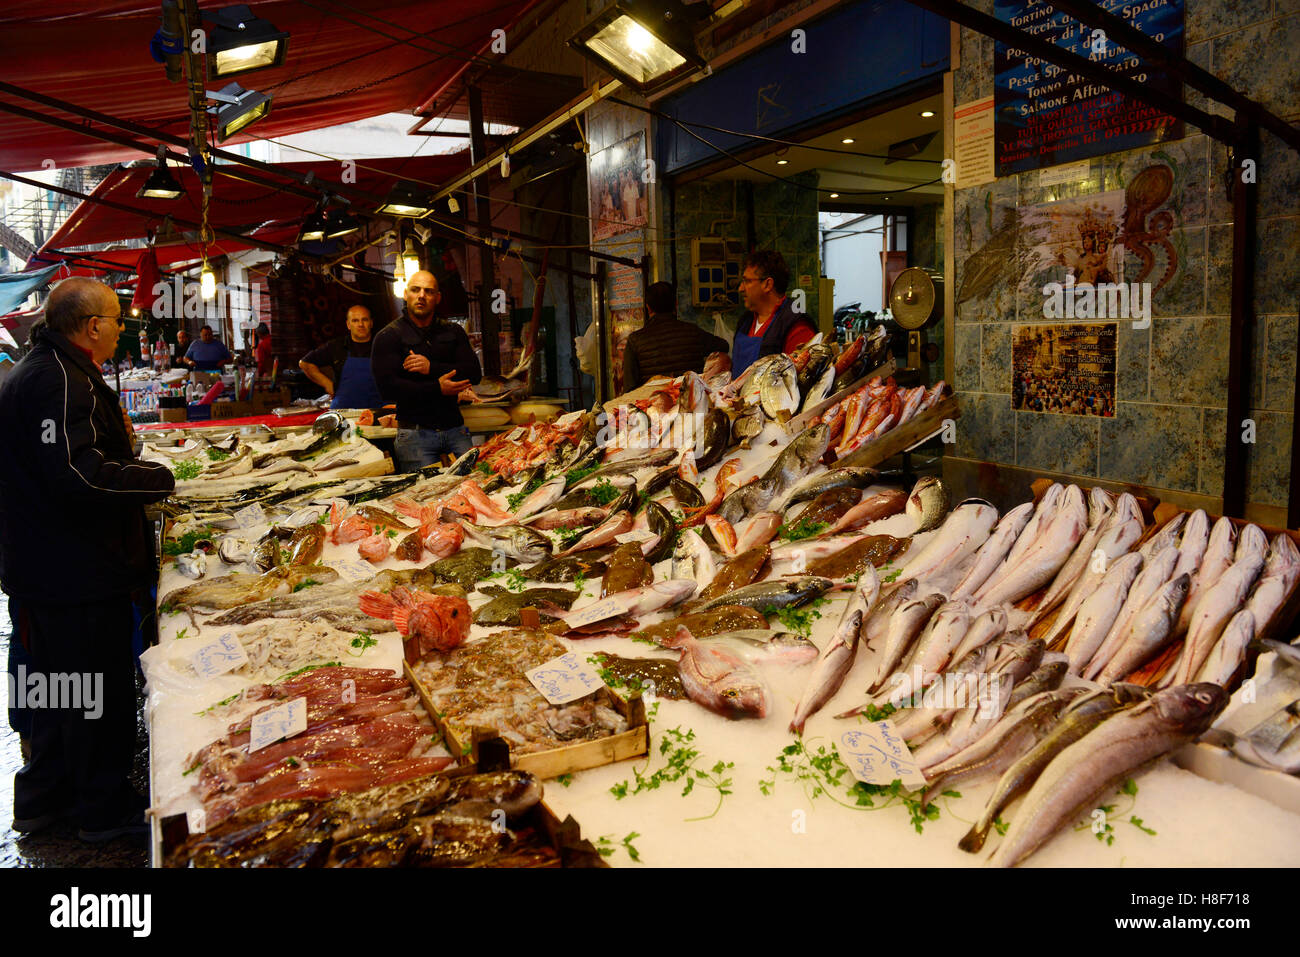 Fresh fish and seafood at the Palermo market. - Stock Image